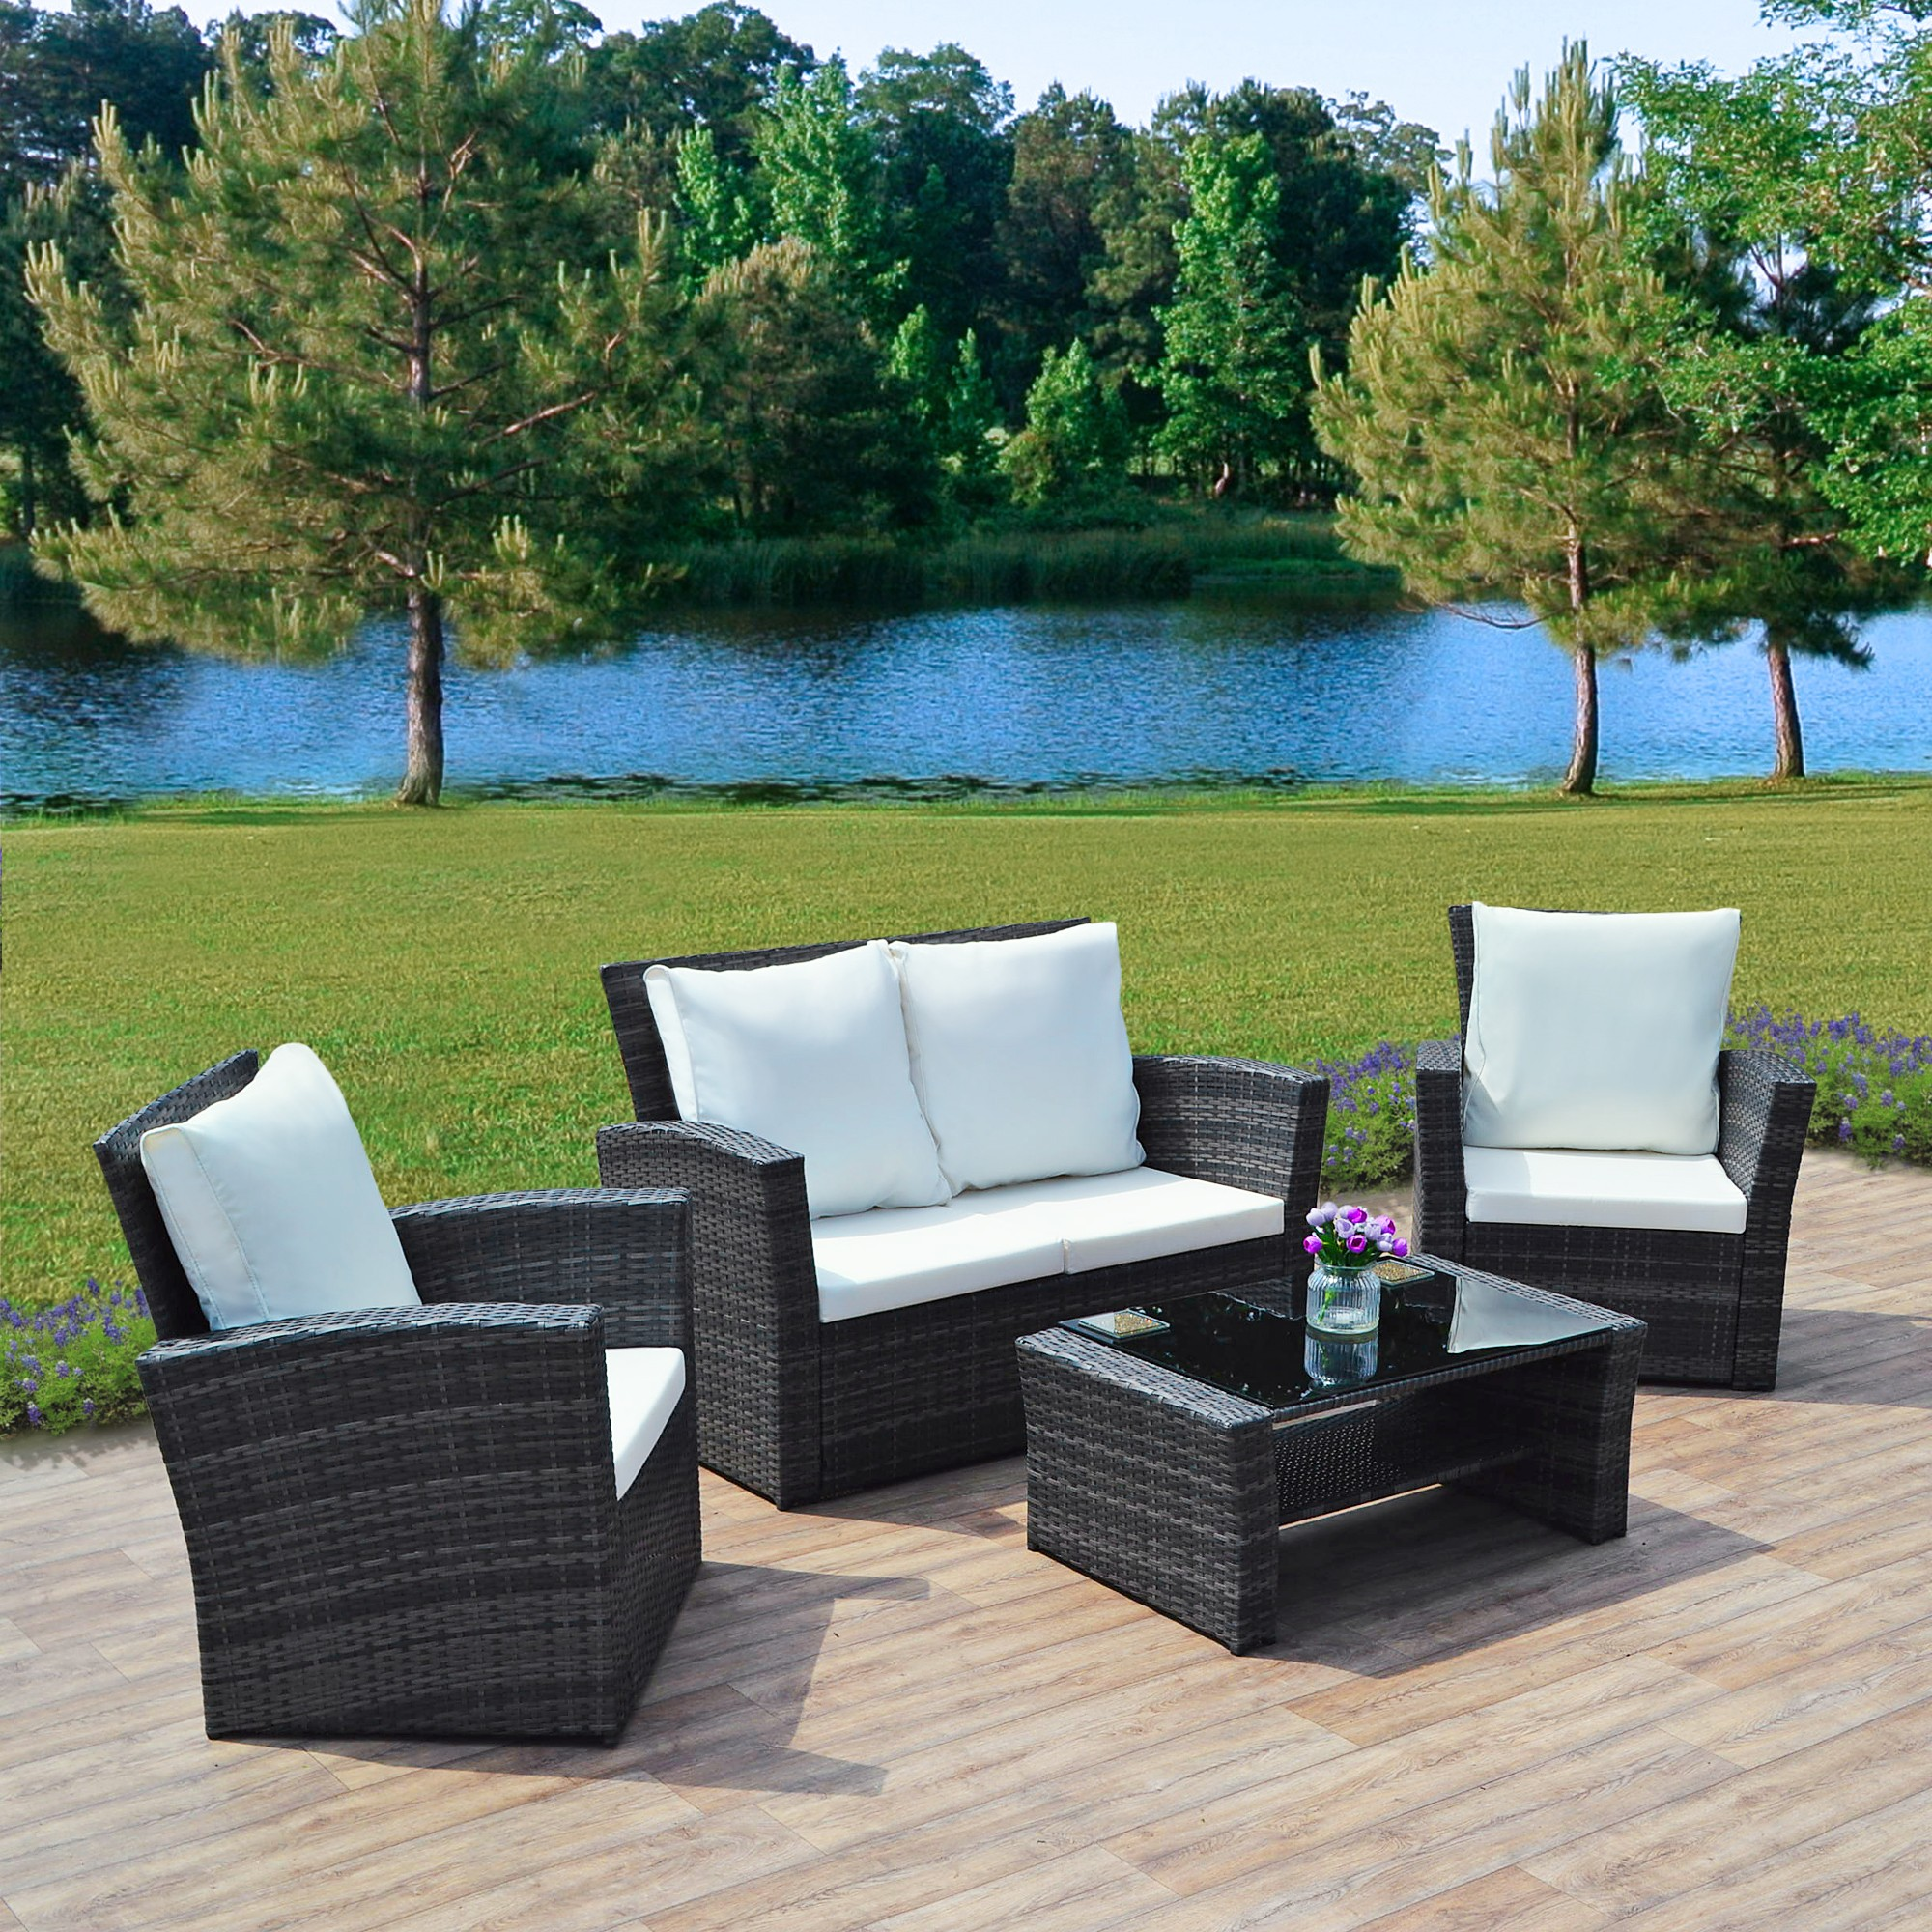 Rattan sofa sets garden furniture o winter 57 off best for Home design 6 piece patio set